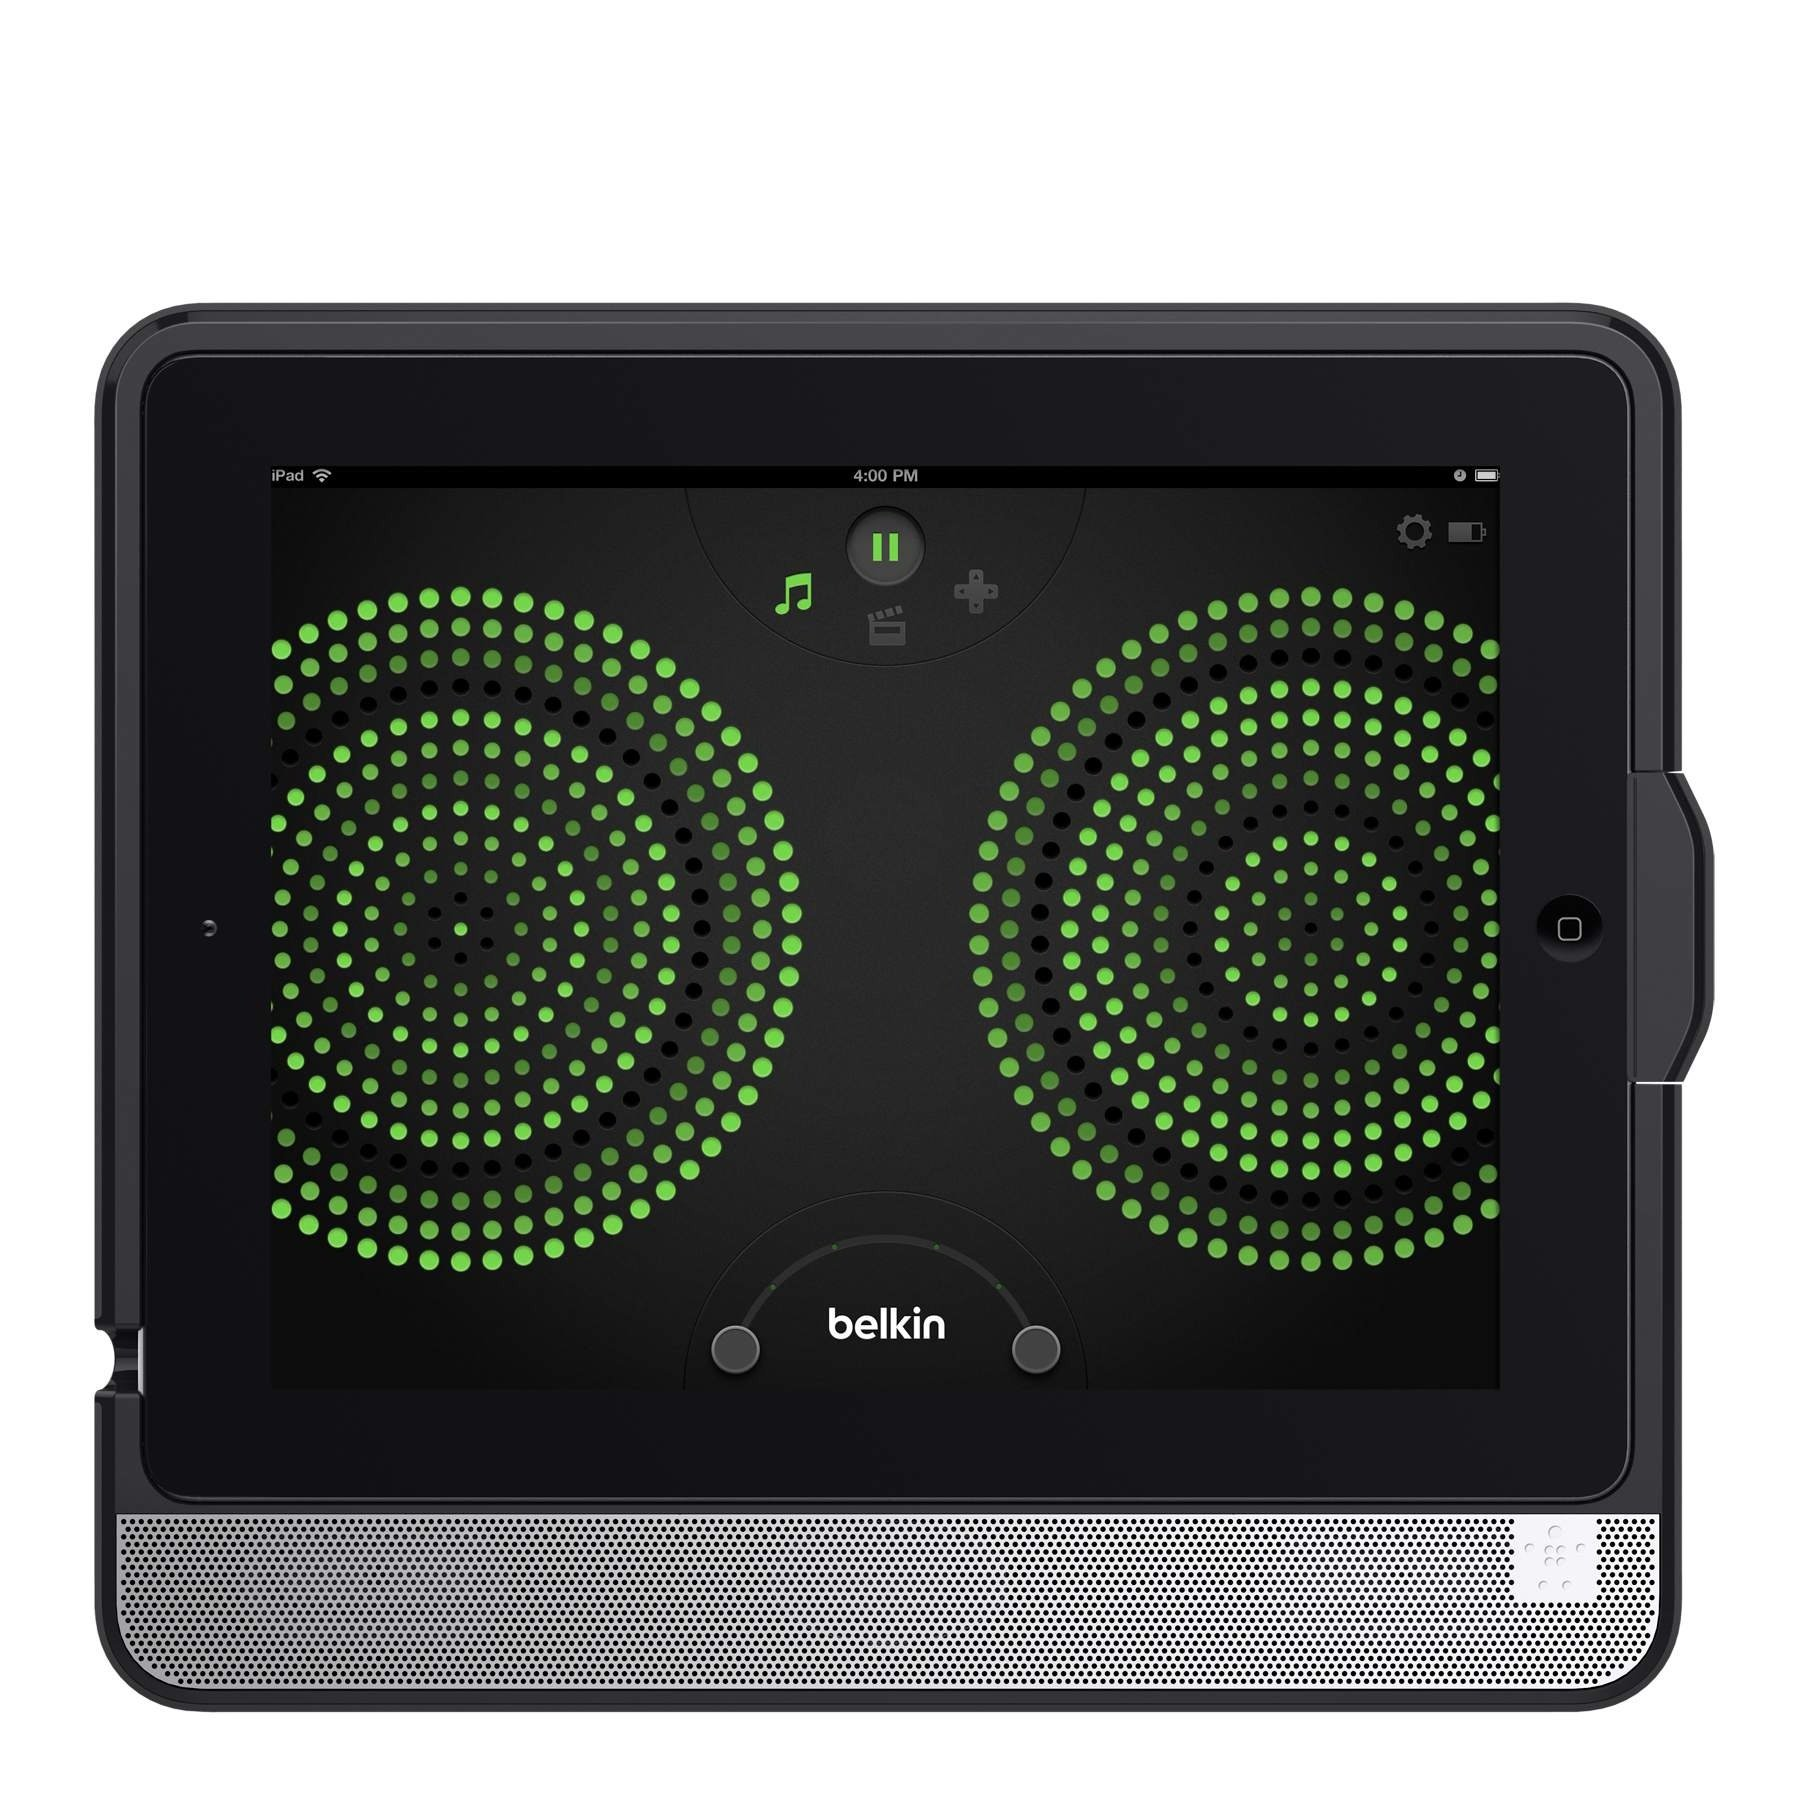 Belkin Thunderstorm Handheld Home Theater Speaker and Case for iPad 4 with Lightning Connector by Belkin (Image #2)